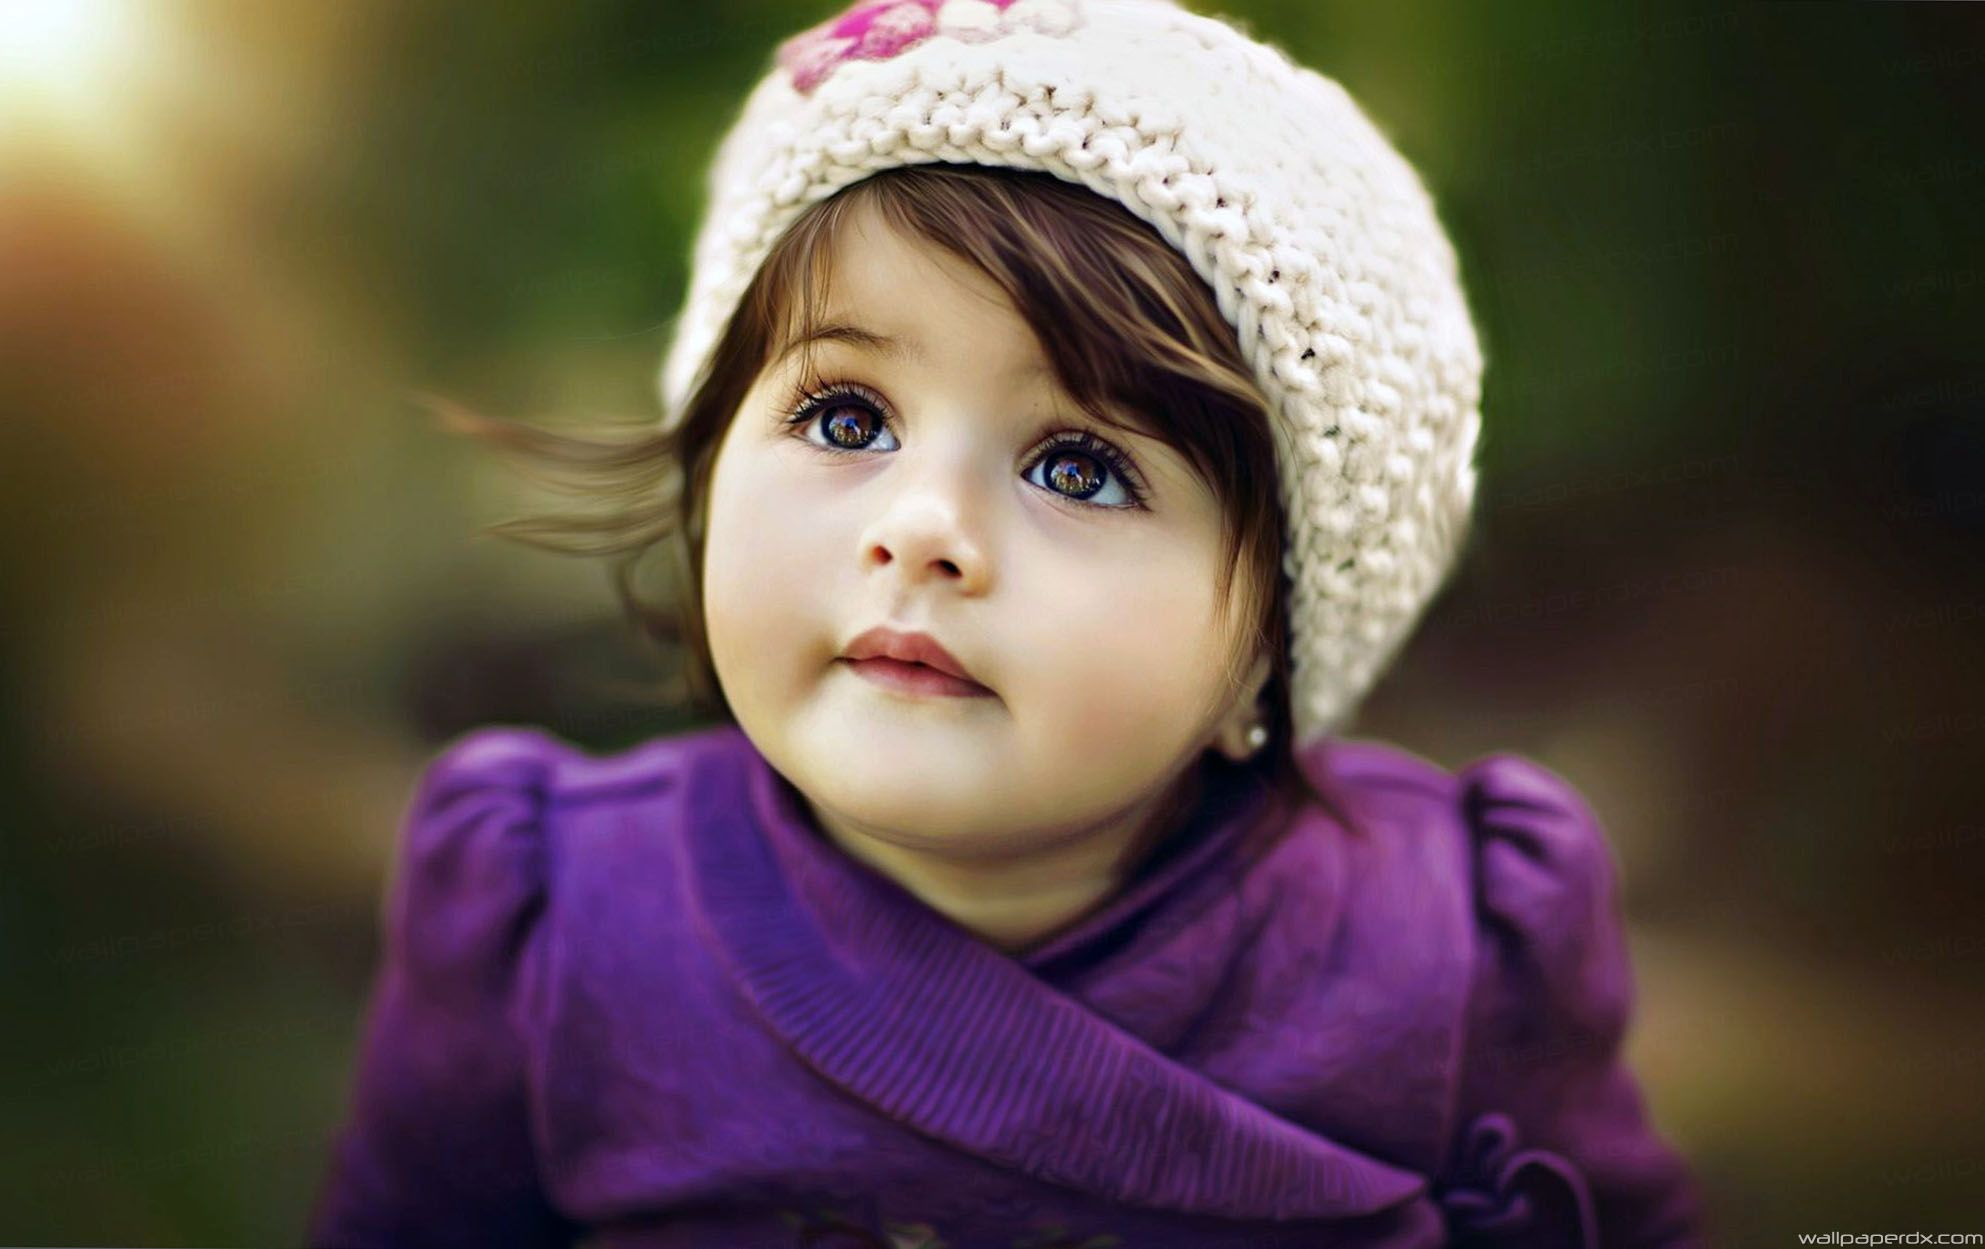 Baby Hd Wallpapers Top Free Baby Hd Backgrounds